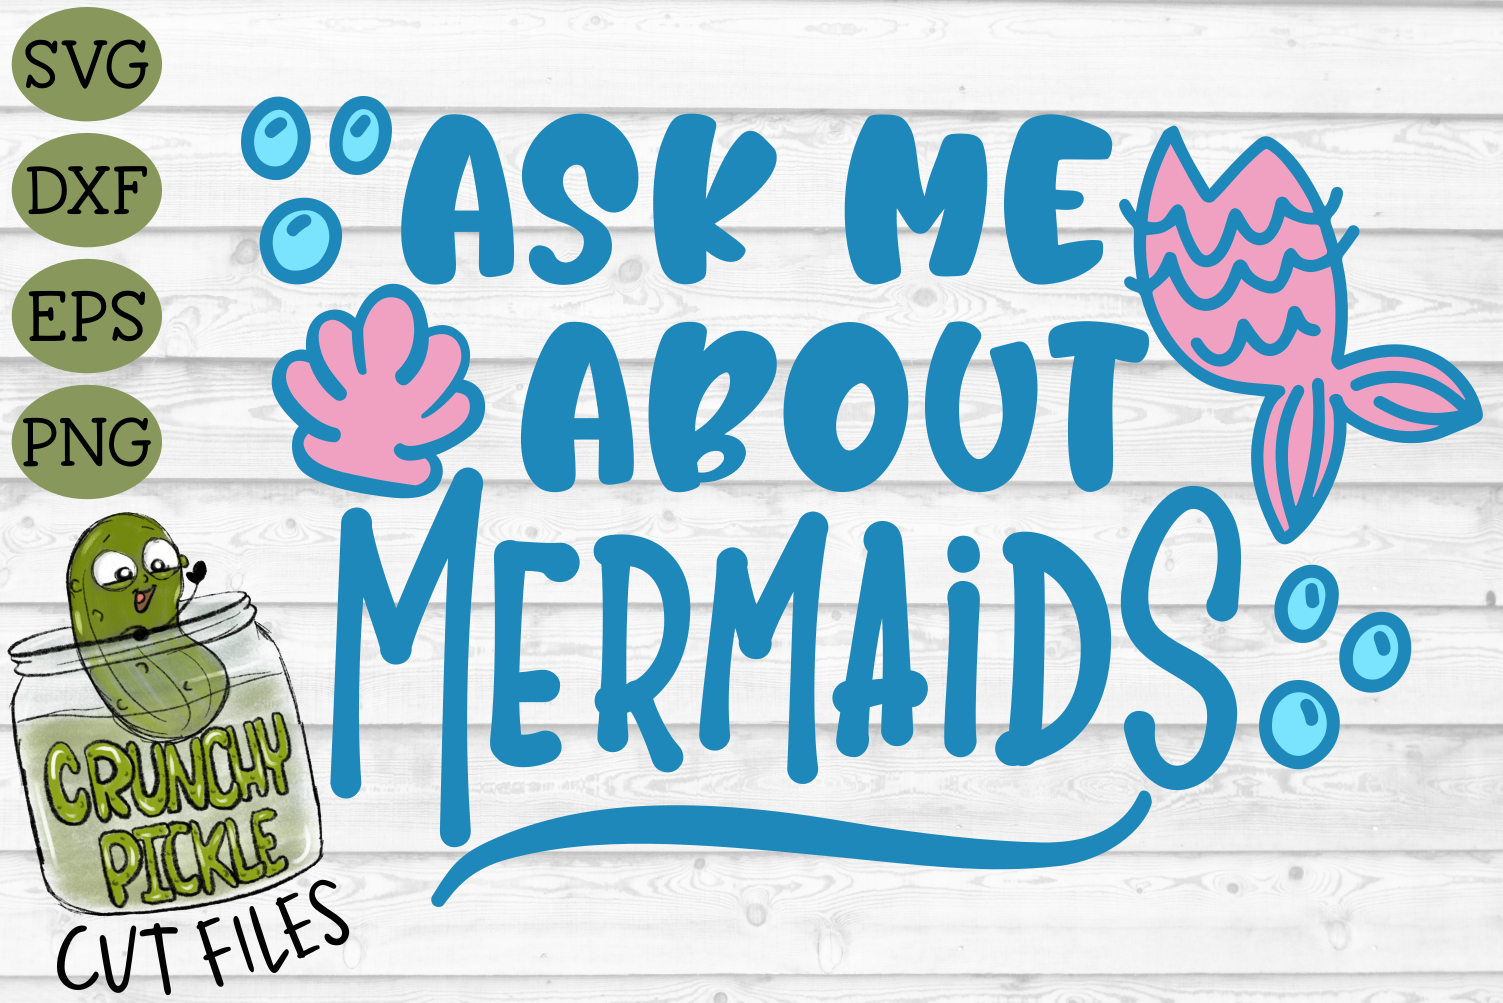 Ask Me About Mermaids SVG example image 2